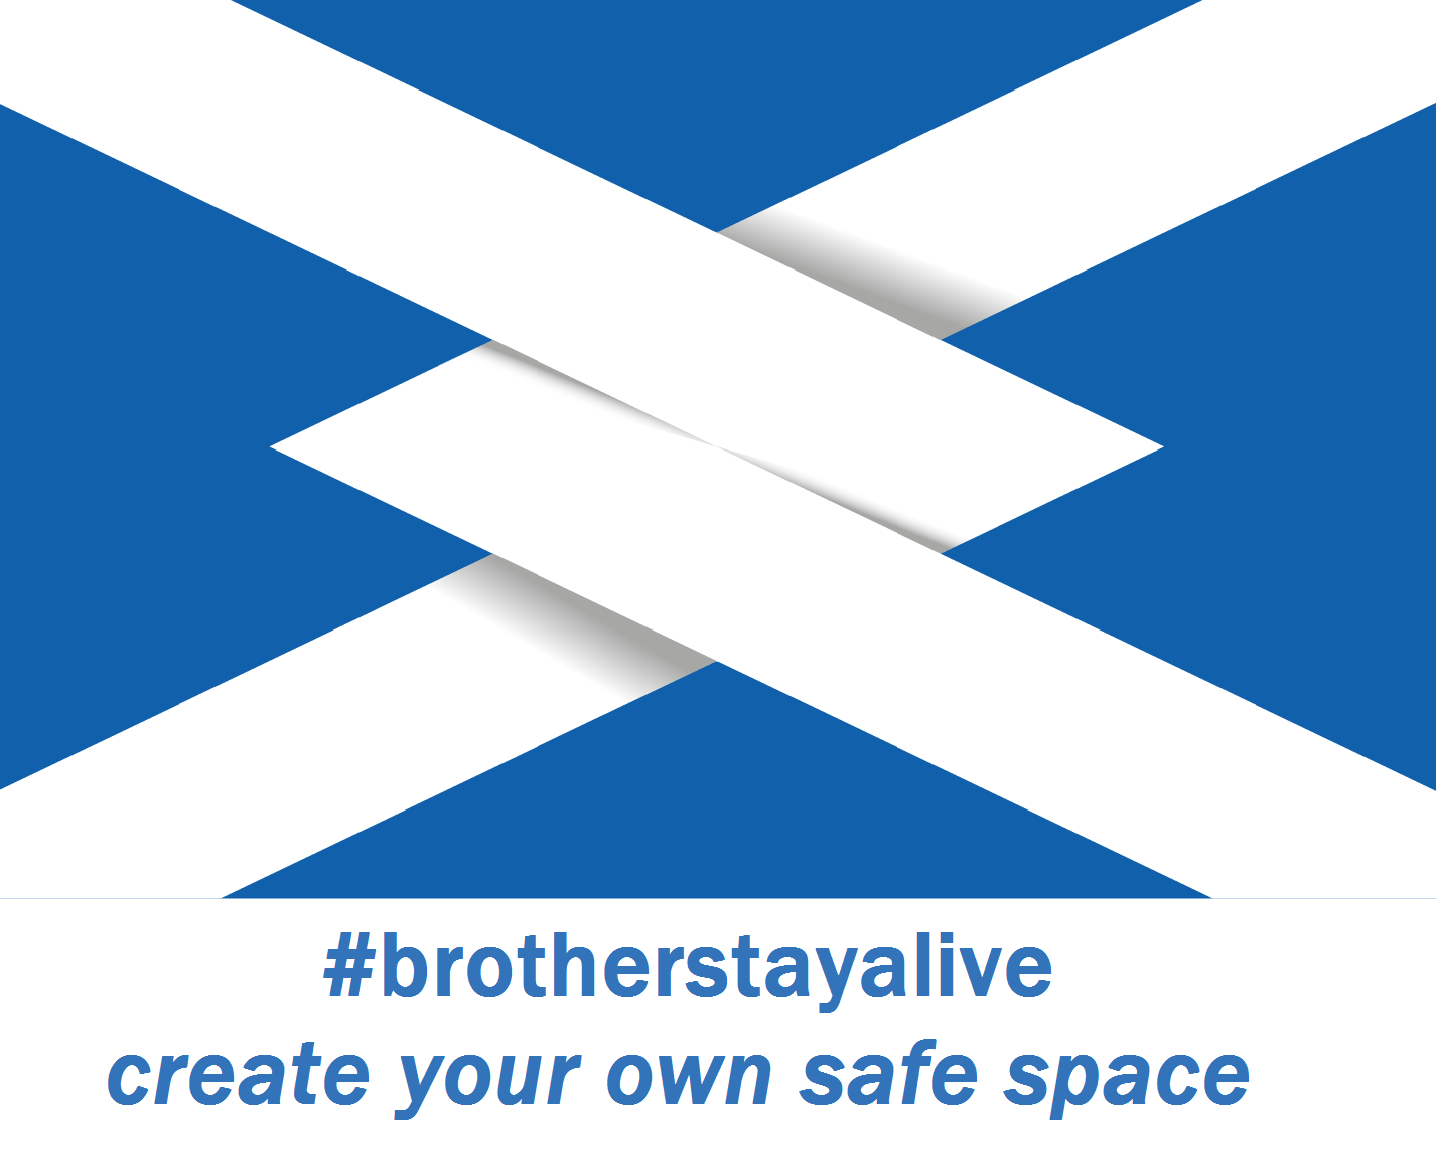 #brotherstayalive -create your own safe space, announcing the suicide prevention app coming from BIA